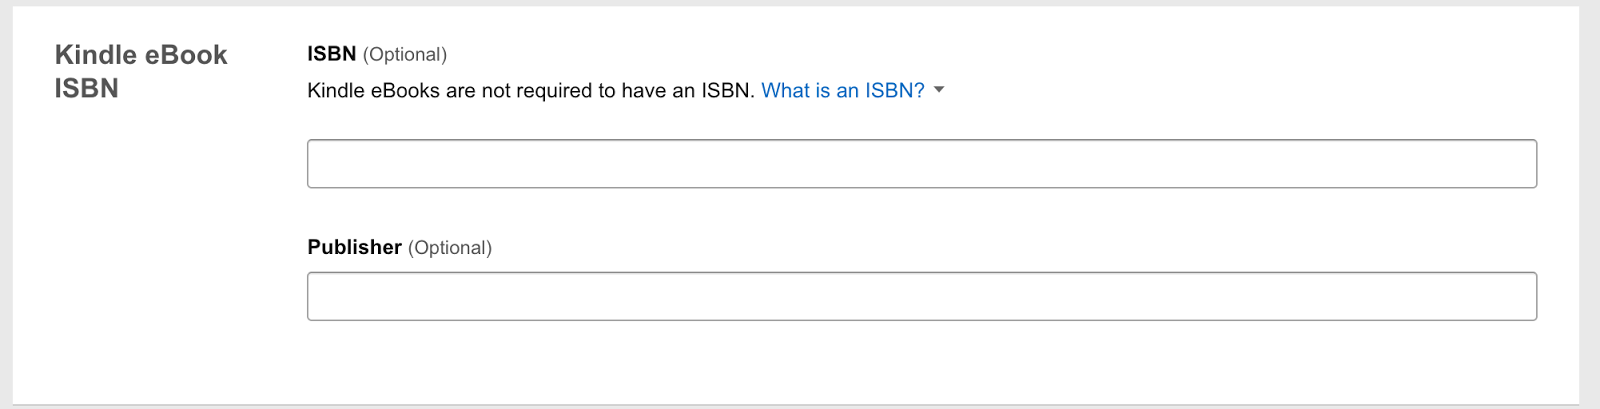 Ebook Content: text fields for ISBN and Publisher